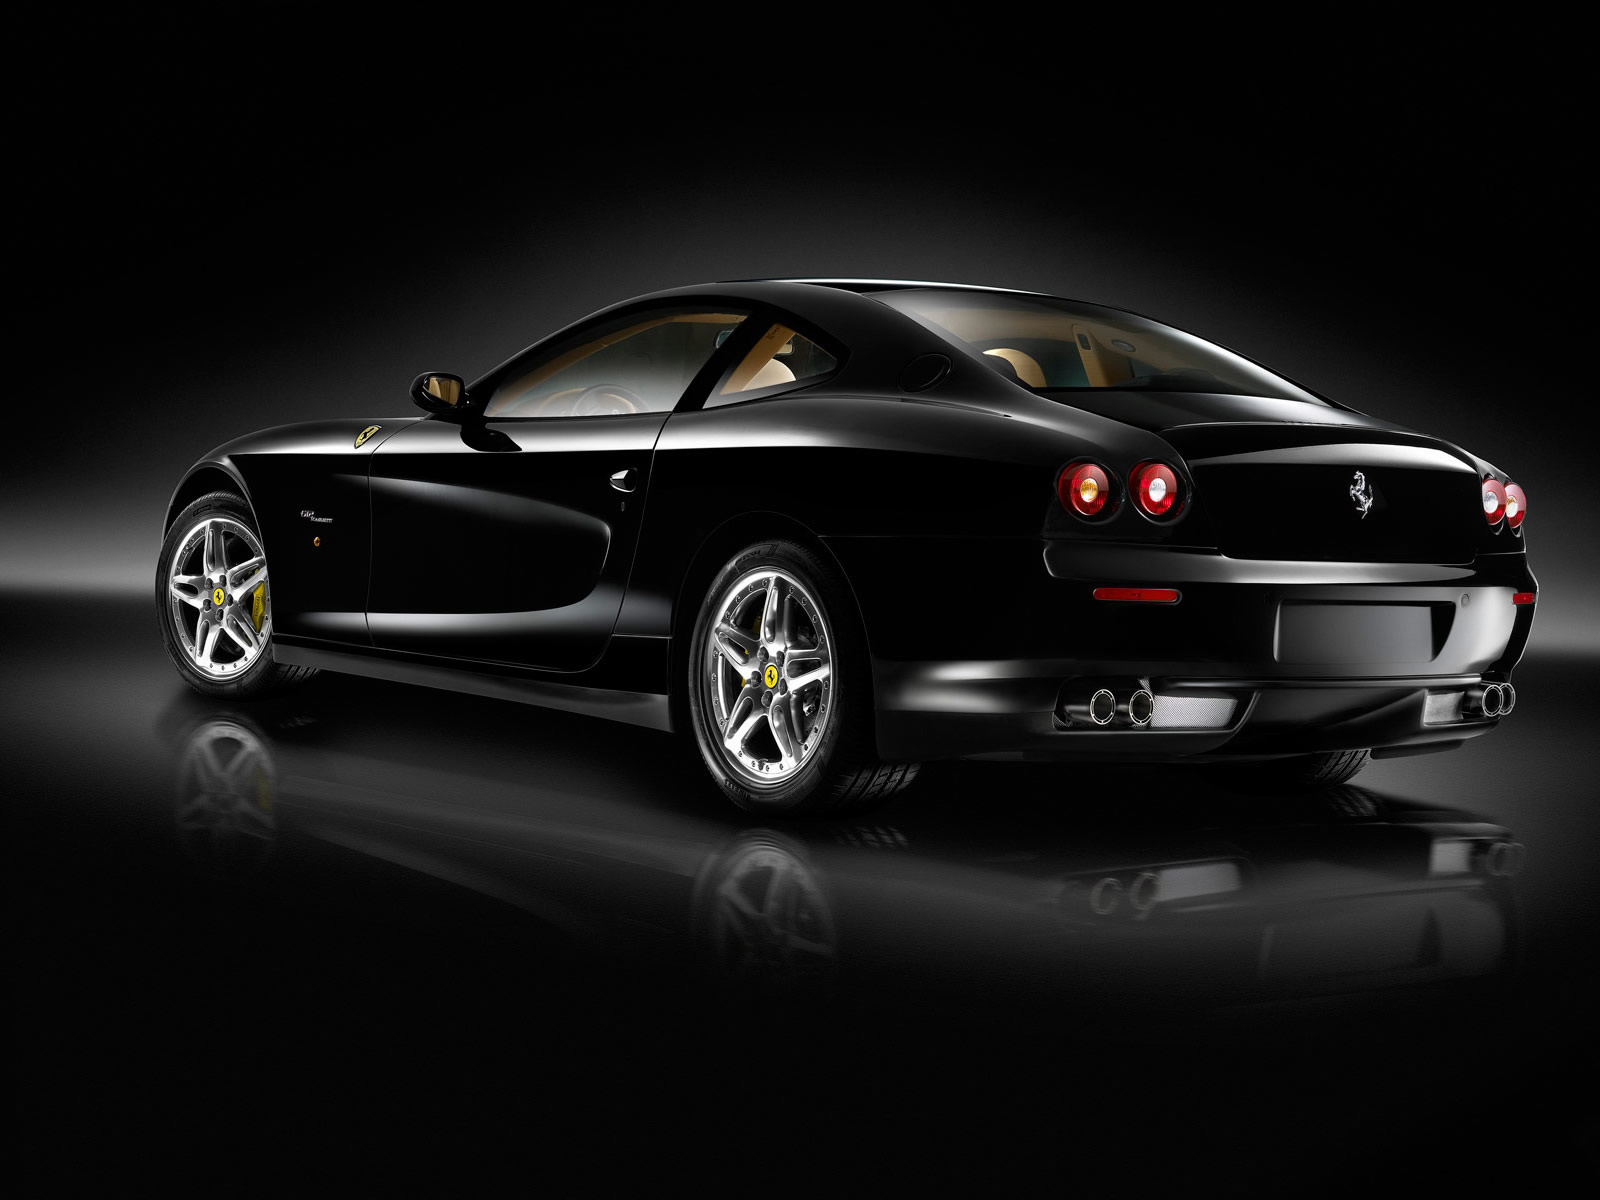 Black Ferrari Background Wallpaper